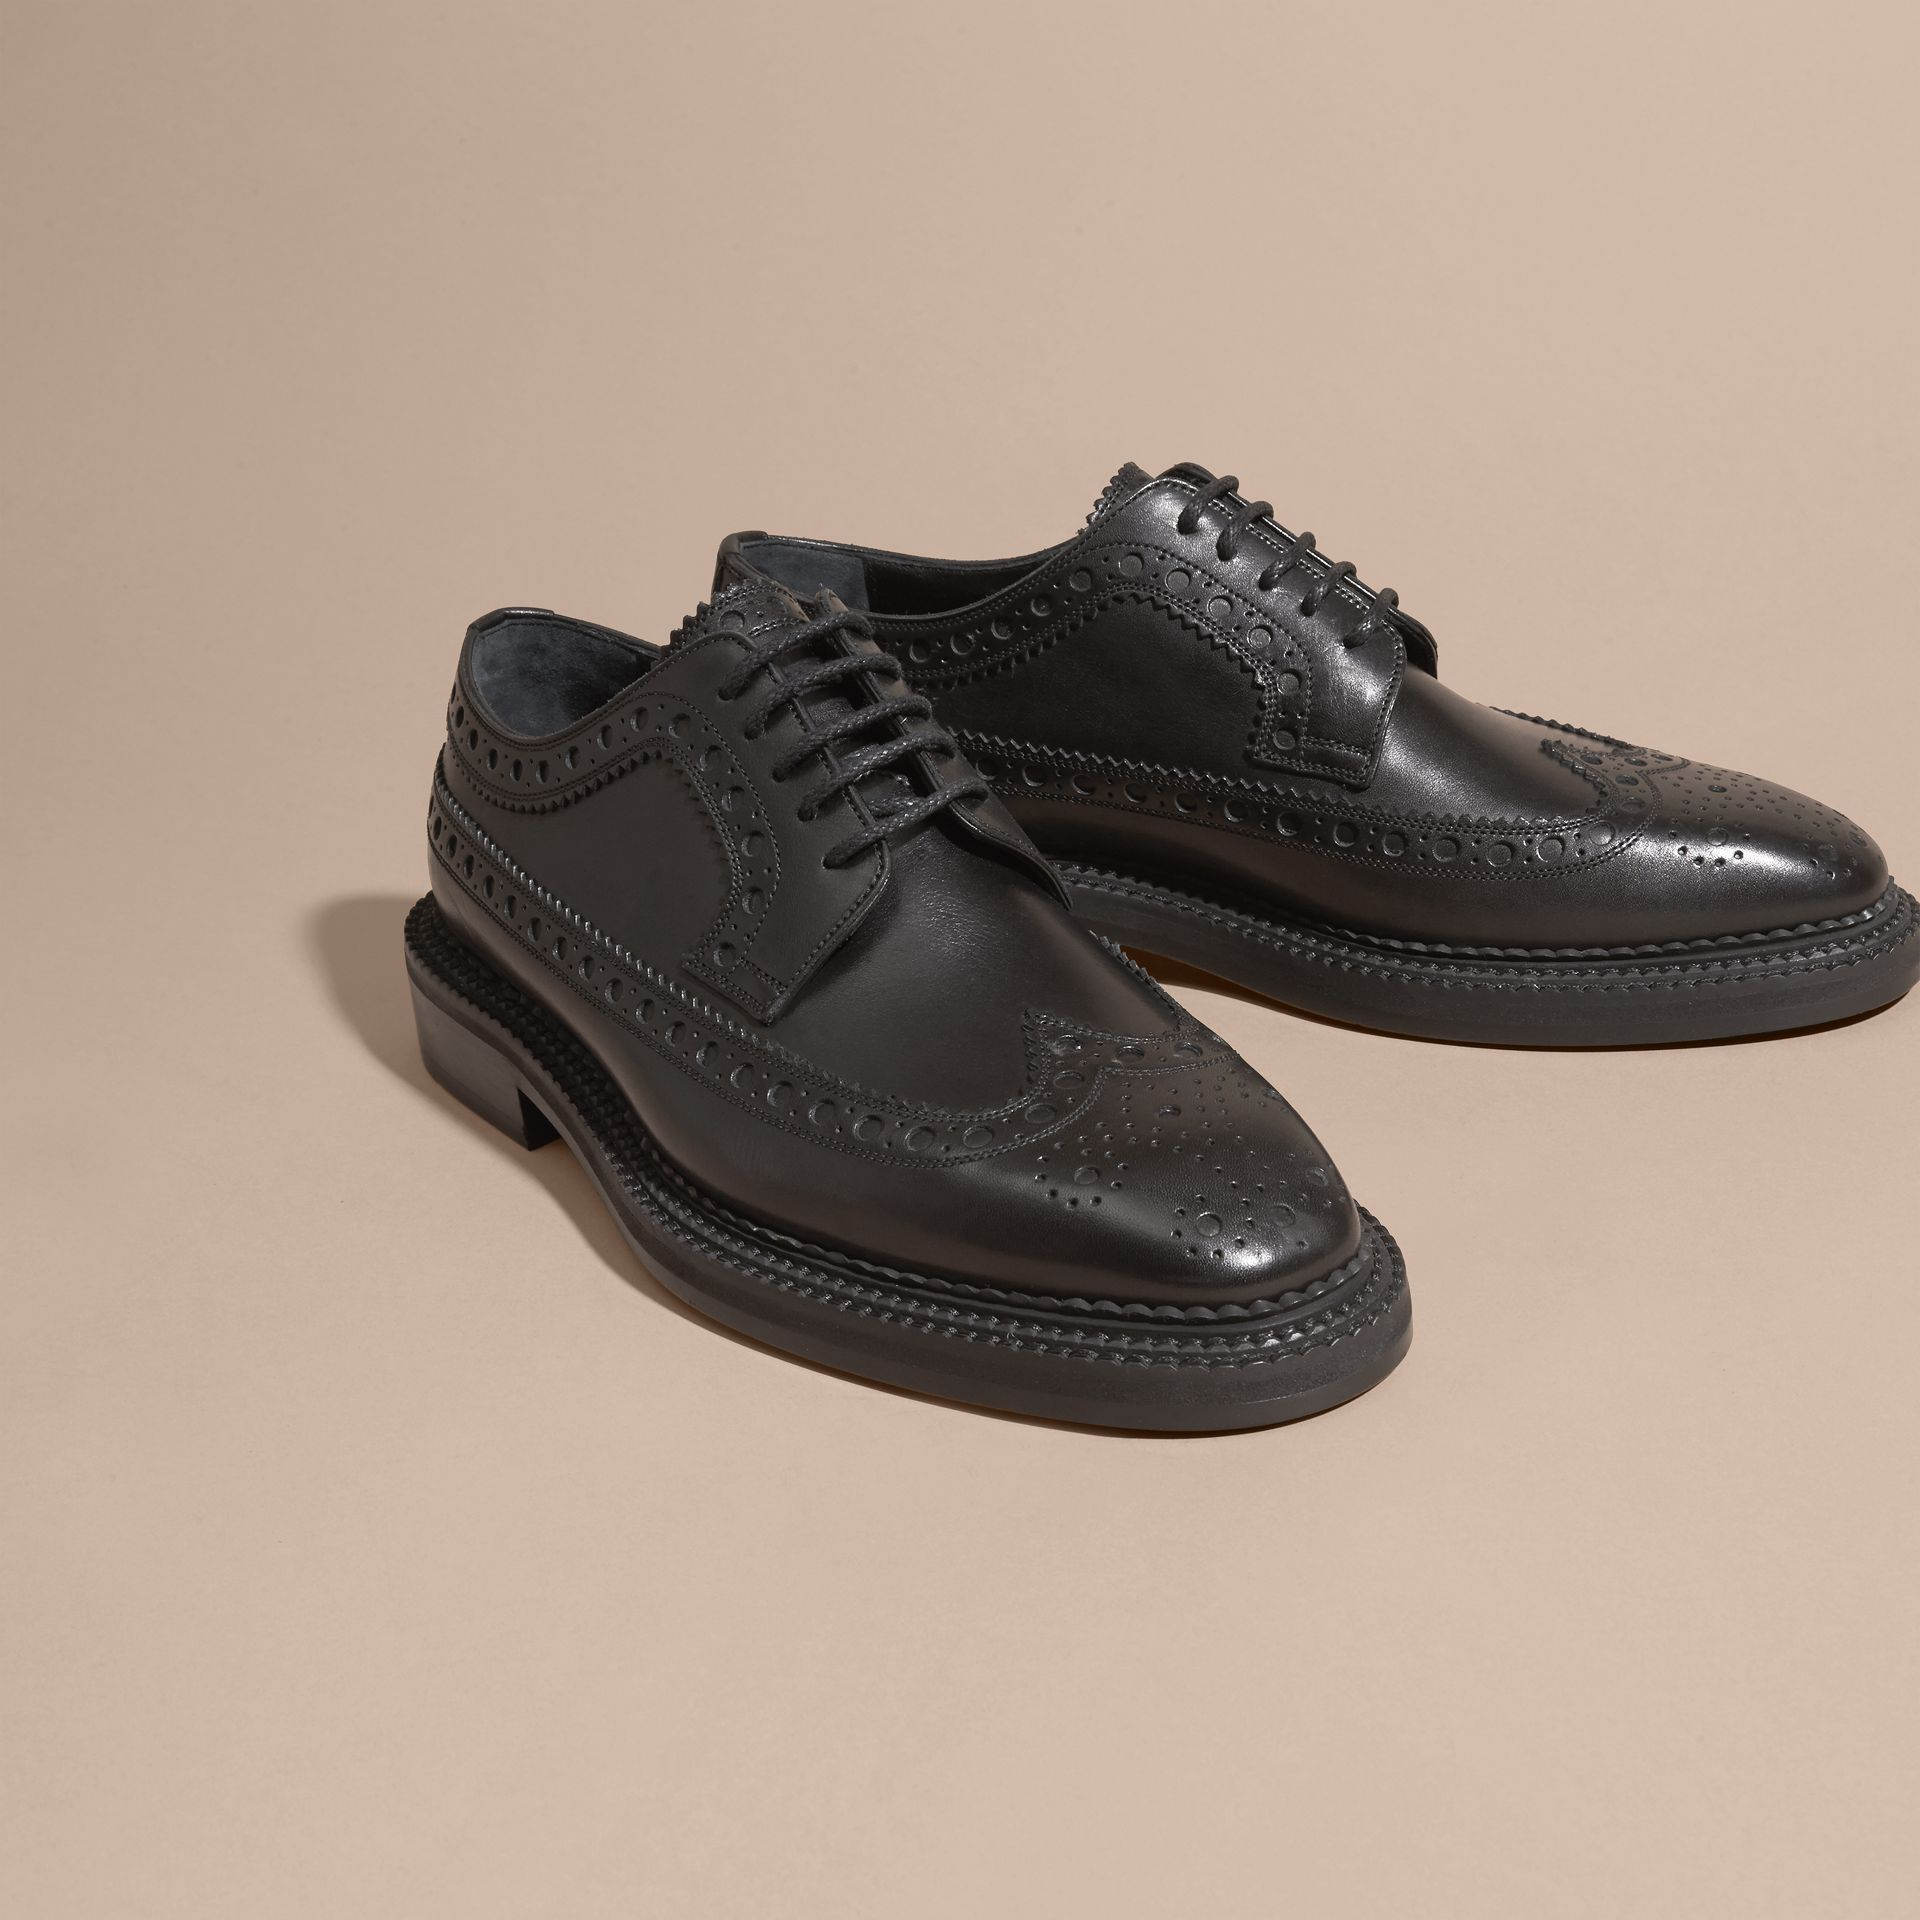 Leather Wingtip Brogues in Black - Men | Burberry Canada - gallery image 3